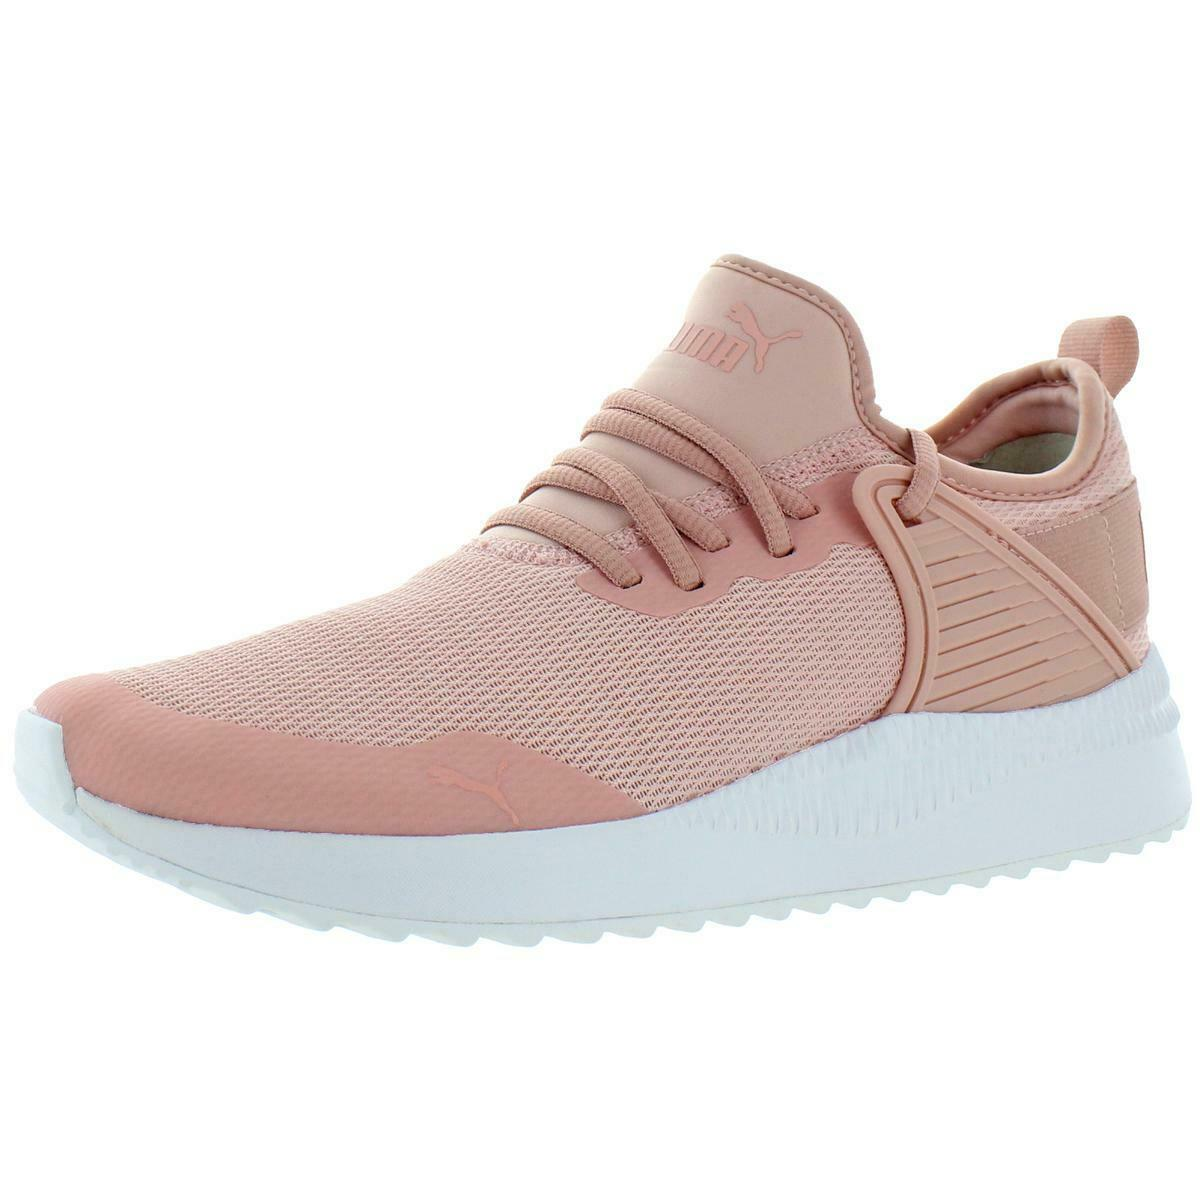 pacer next cage women's sneakers